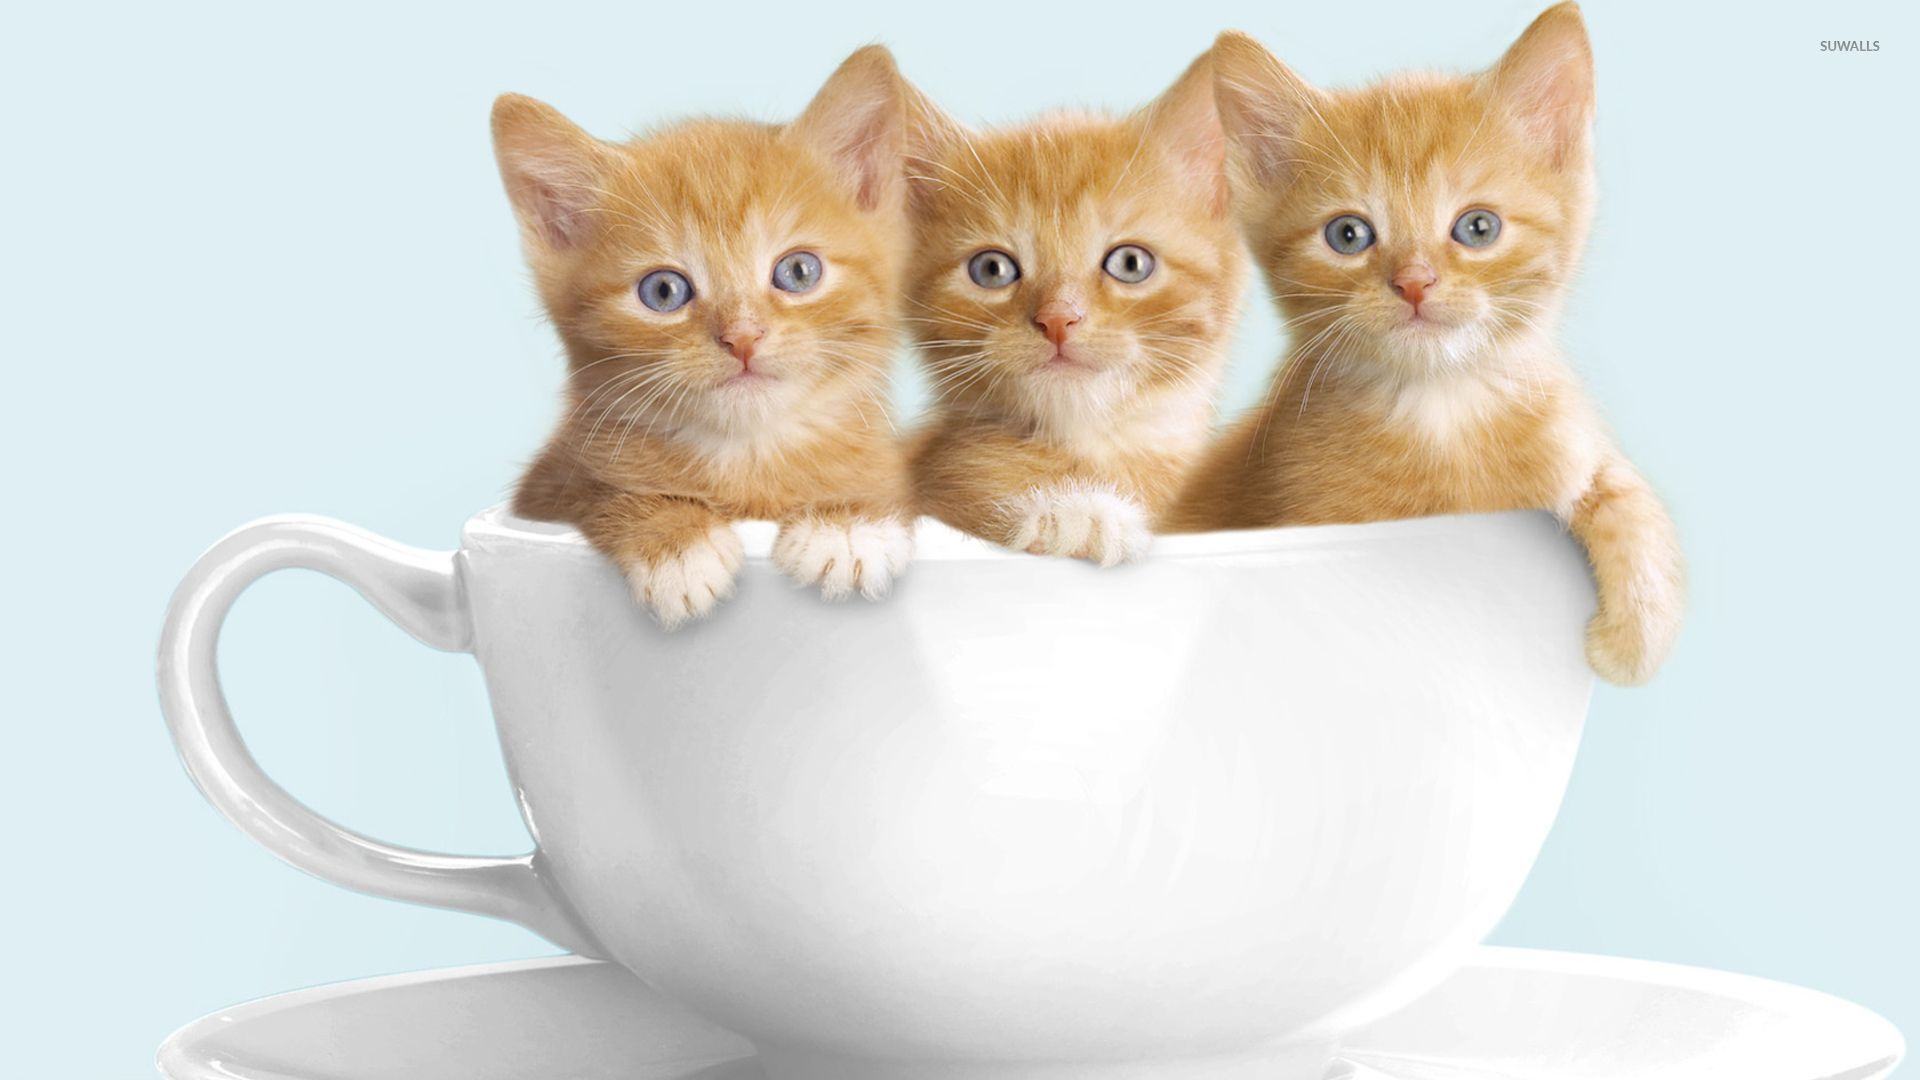 Cute Kitty Cartoon Wallpaper Cute Kittens In A Cup Wallpaper Animal Wallpapers 50398